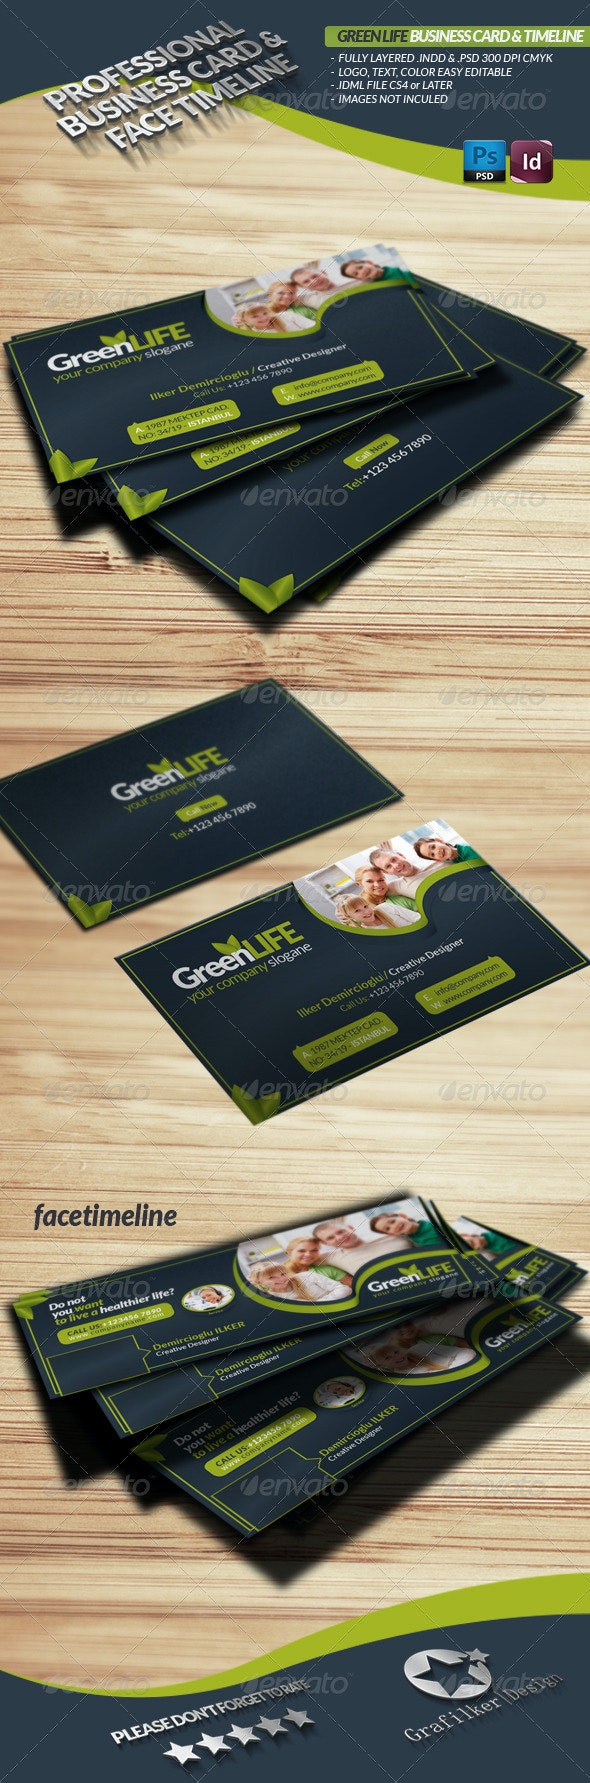 Green Life Business Card & Face-Timeline - Creative Business Cards